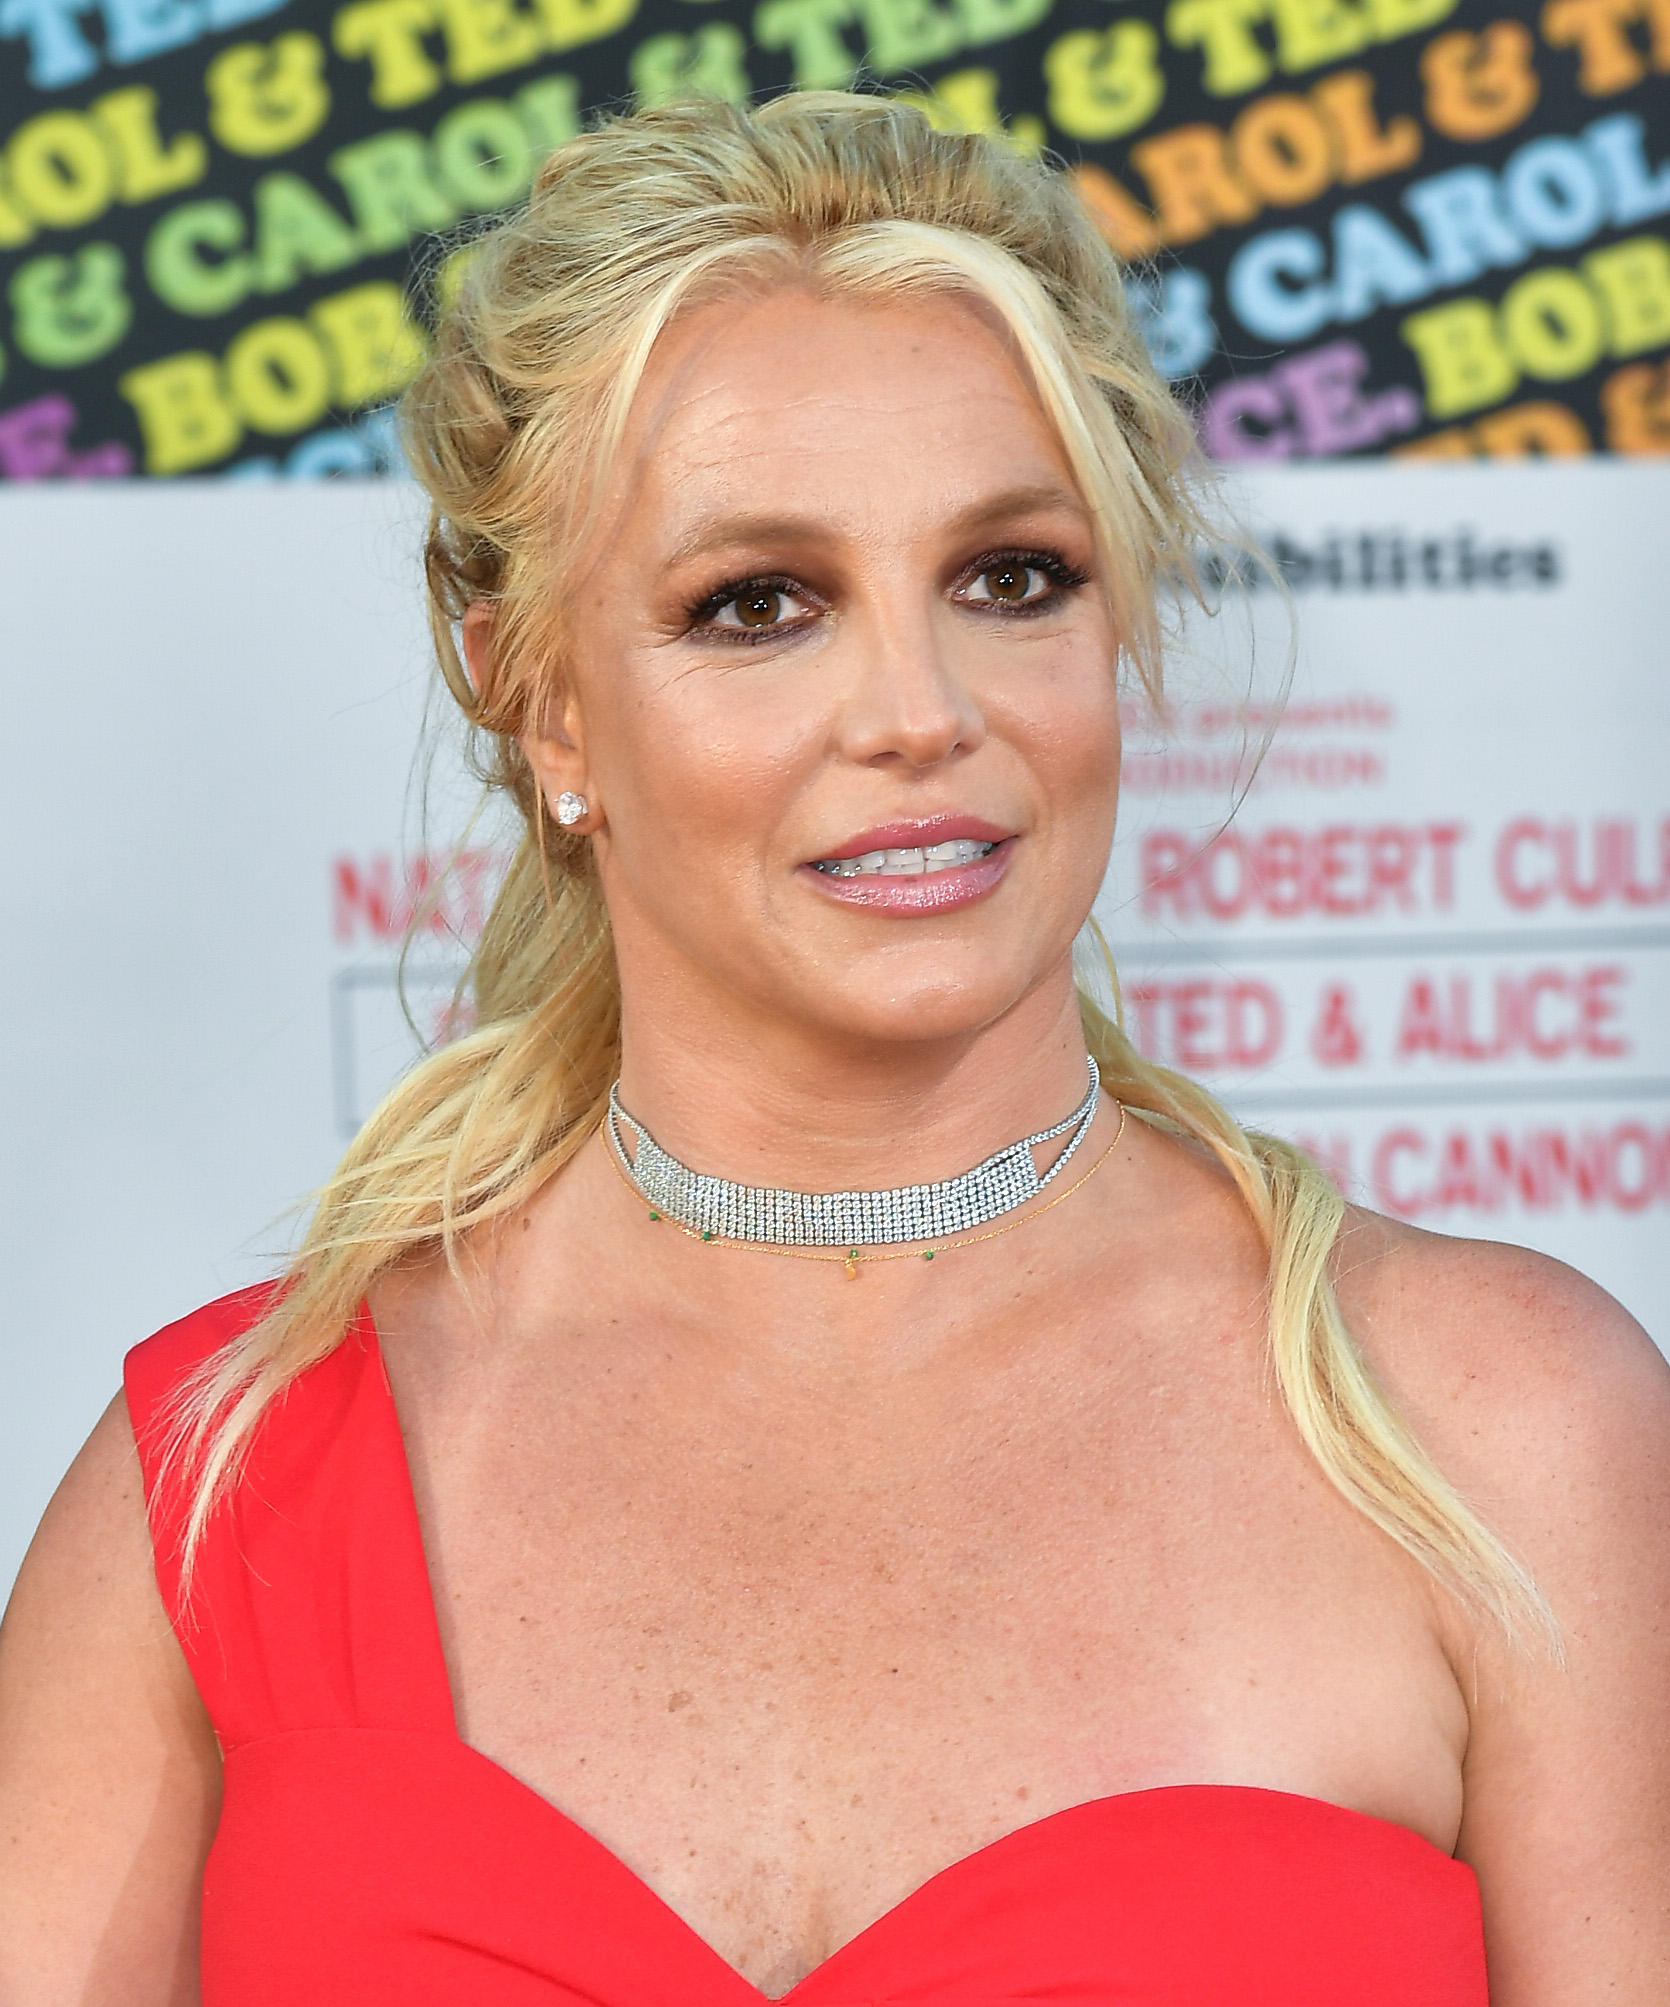 Britney Spears says conservatorship is 'voluntary'